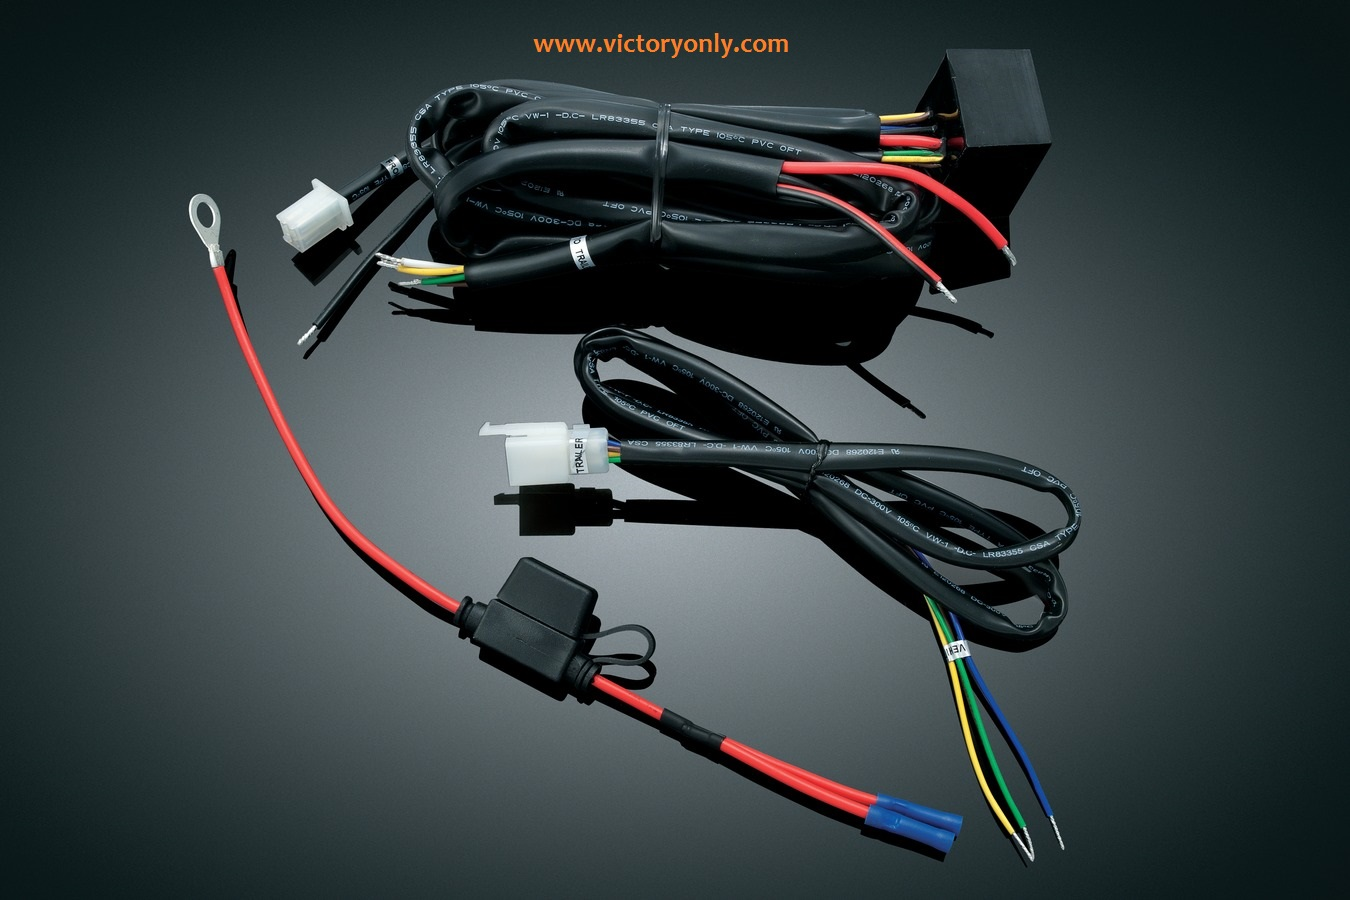 16997_kur_7671_tt_u_13_1350x900_RGB_72DPI trailer wiring harnesses for victory motorcycle Universal Wiring Harness Diagram at panicattacktreatment.co